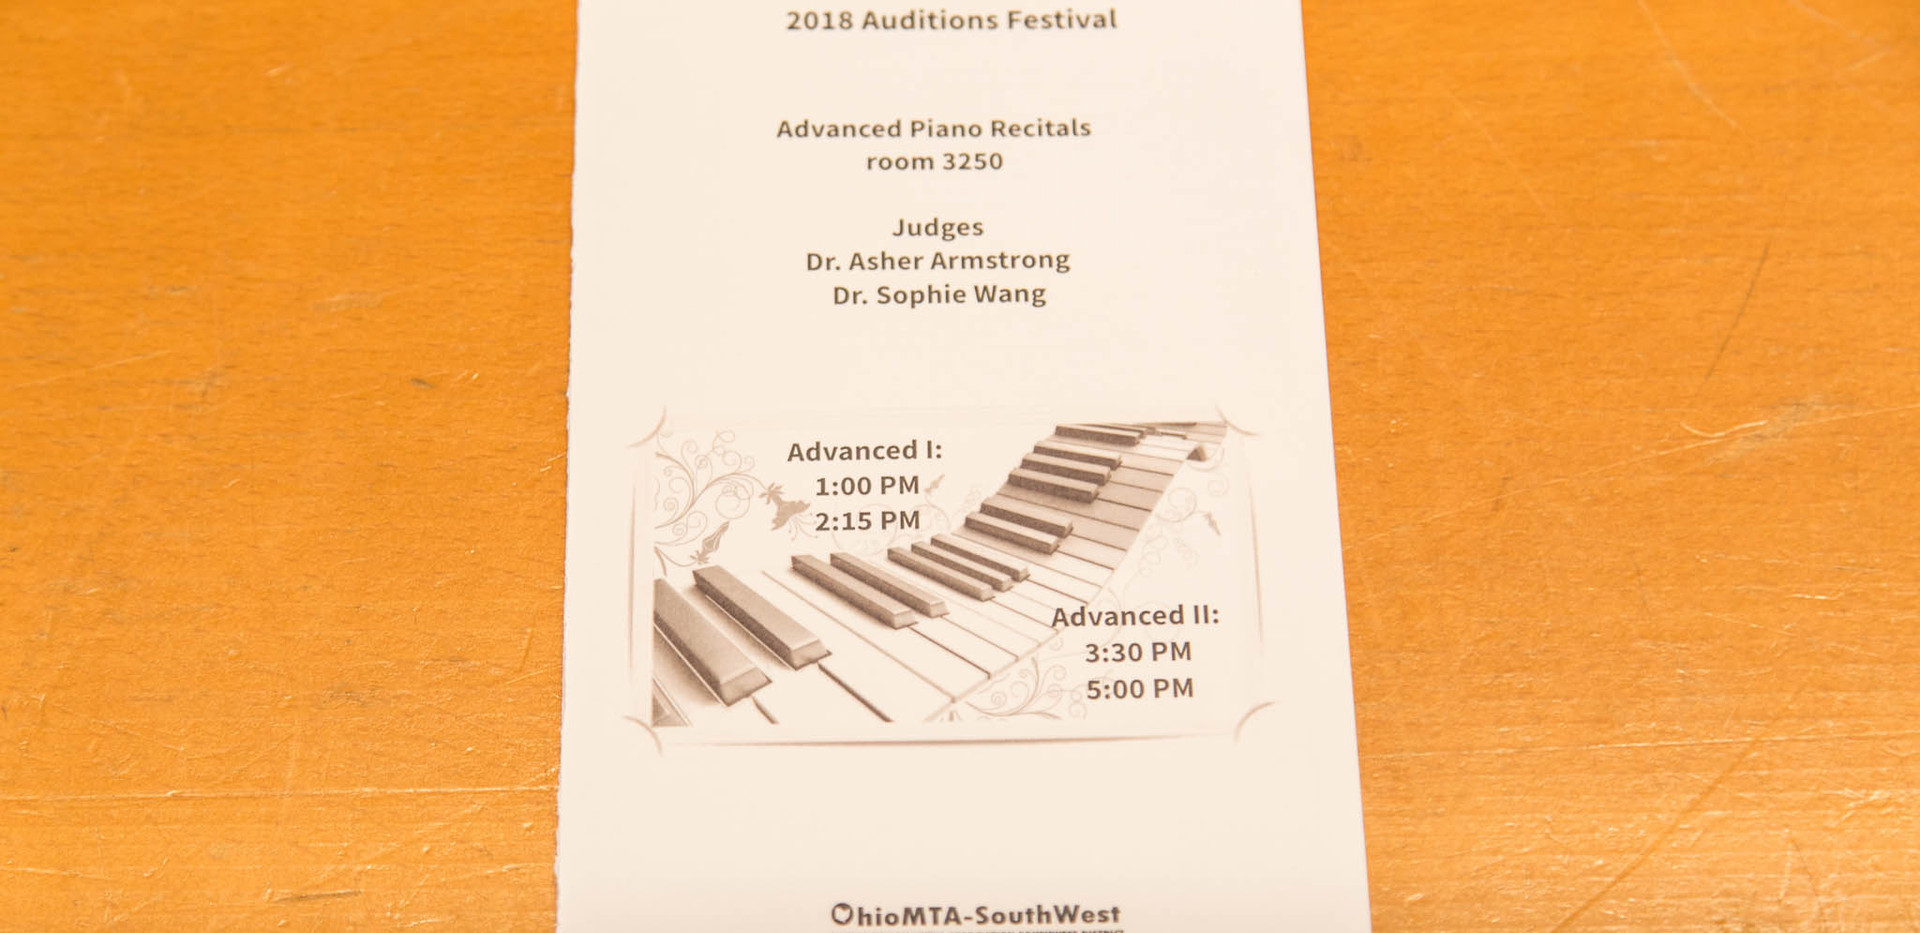 2018 Auditions Festival 1